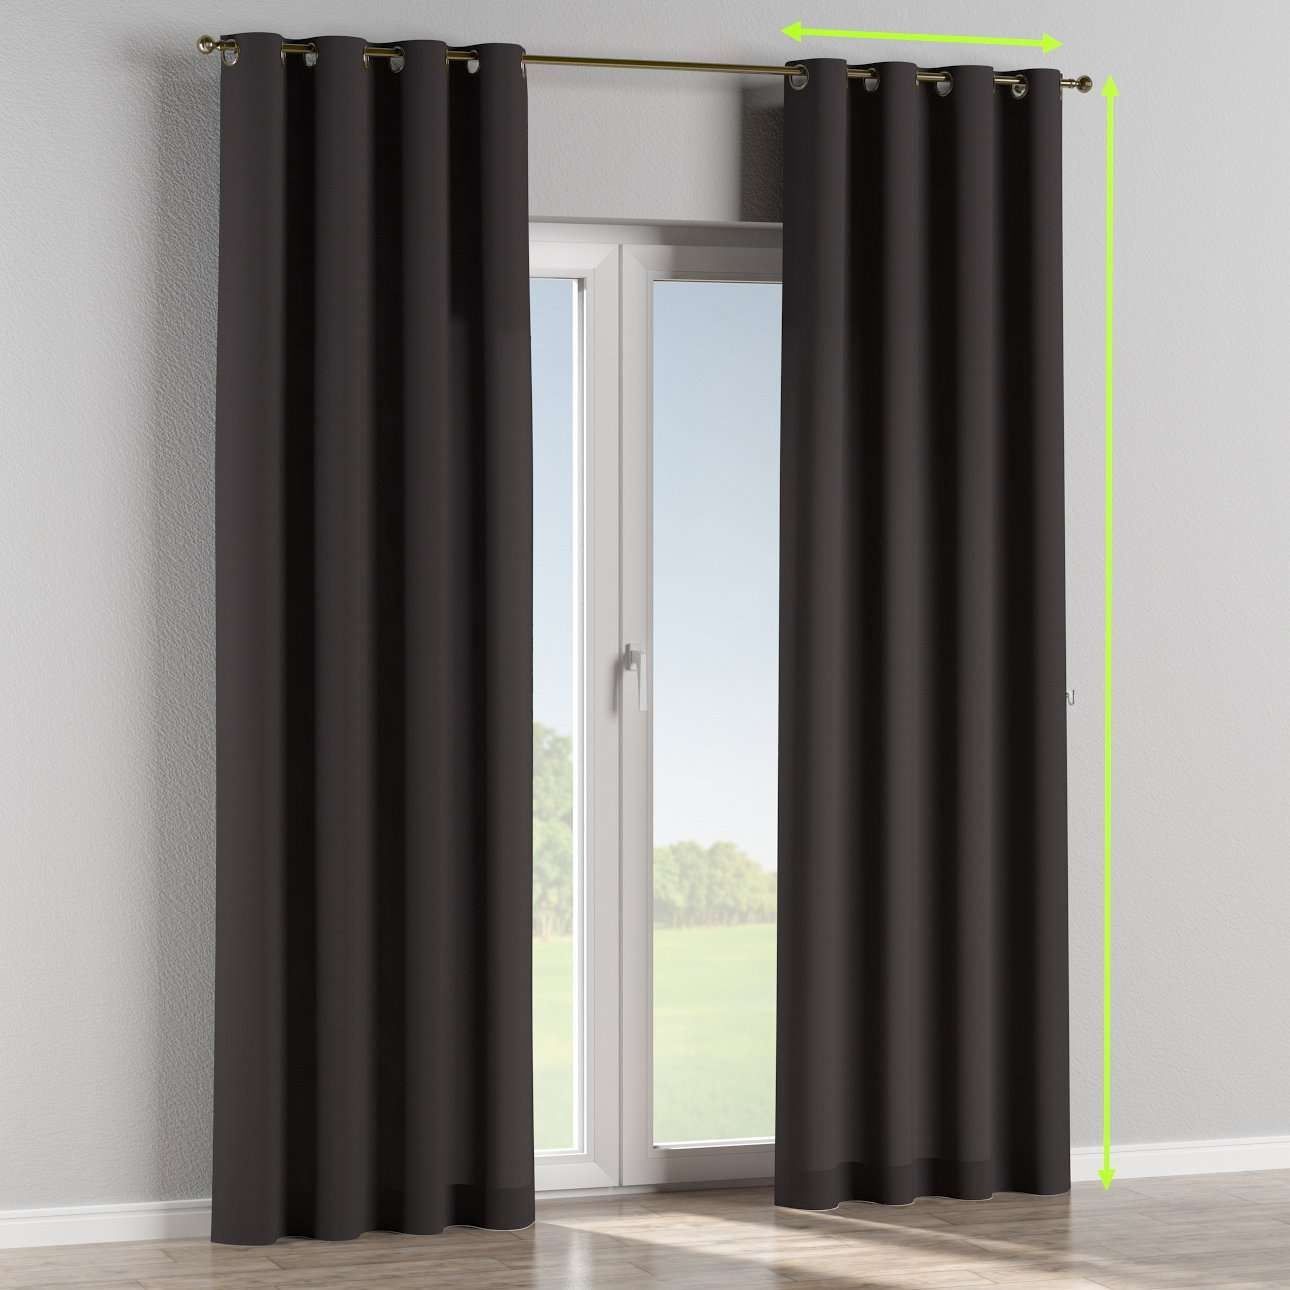 Eyelet lined curtains in collection Cotton Panama, fabric: 702-09